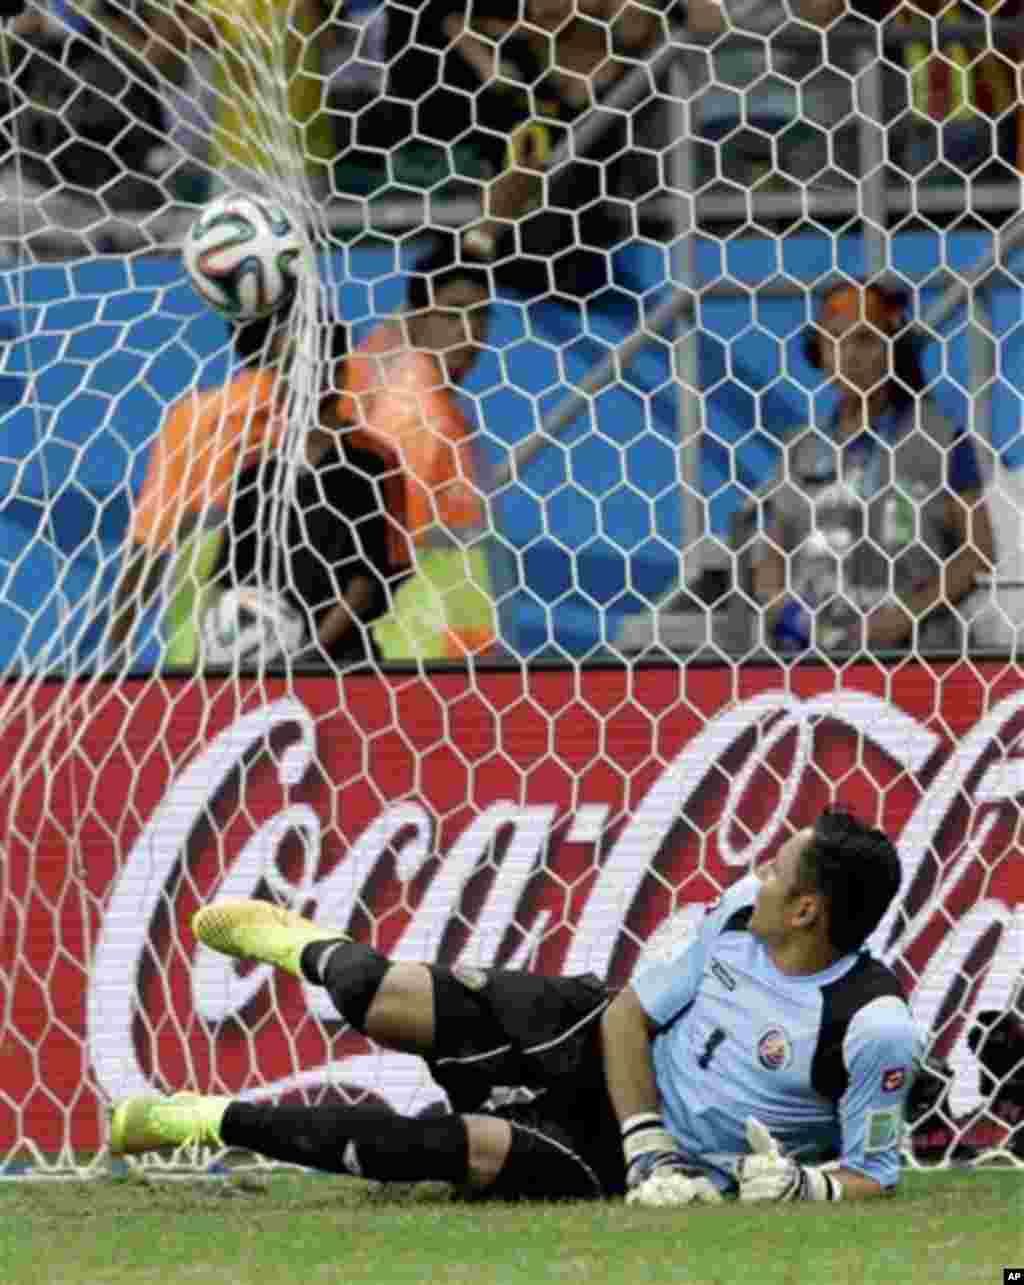 Costa Rica goalkeeper Keylor Navas fails to save a penalty kick after extra time in the World Cup quarterfinal soccer match between the Netherlands and Costa Rica at the Arena Fonte Nova in Salvador, Brazil, Saturday, July 5, 2014. The Netherlands won 4-3